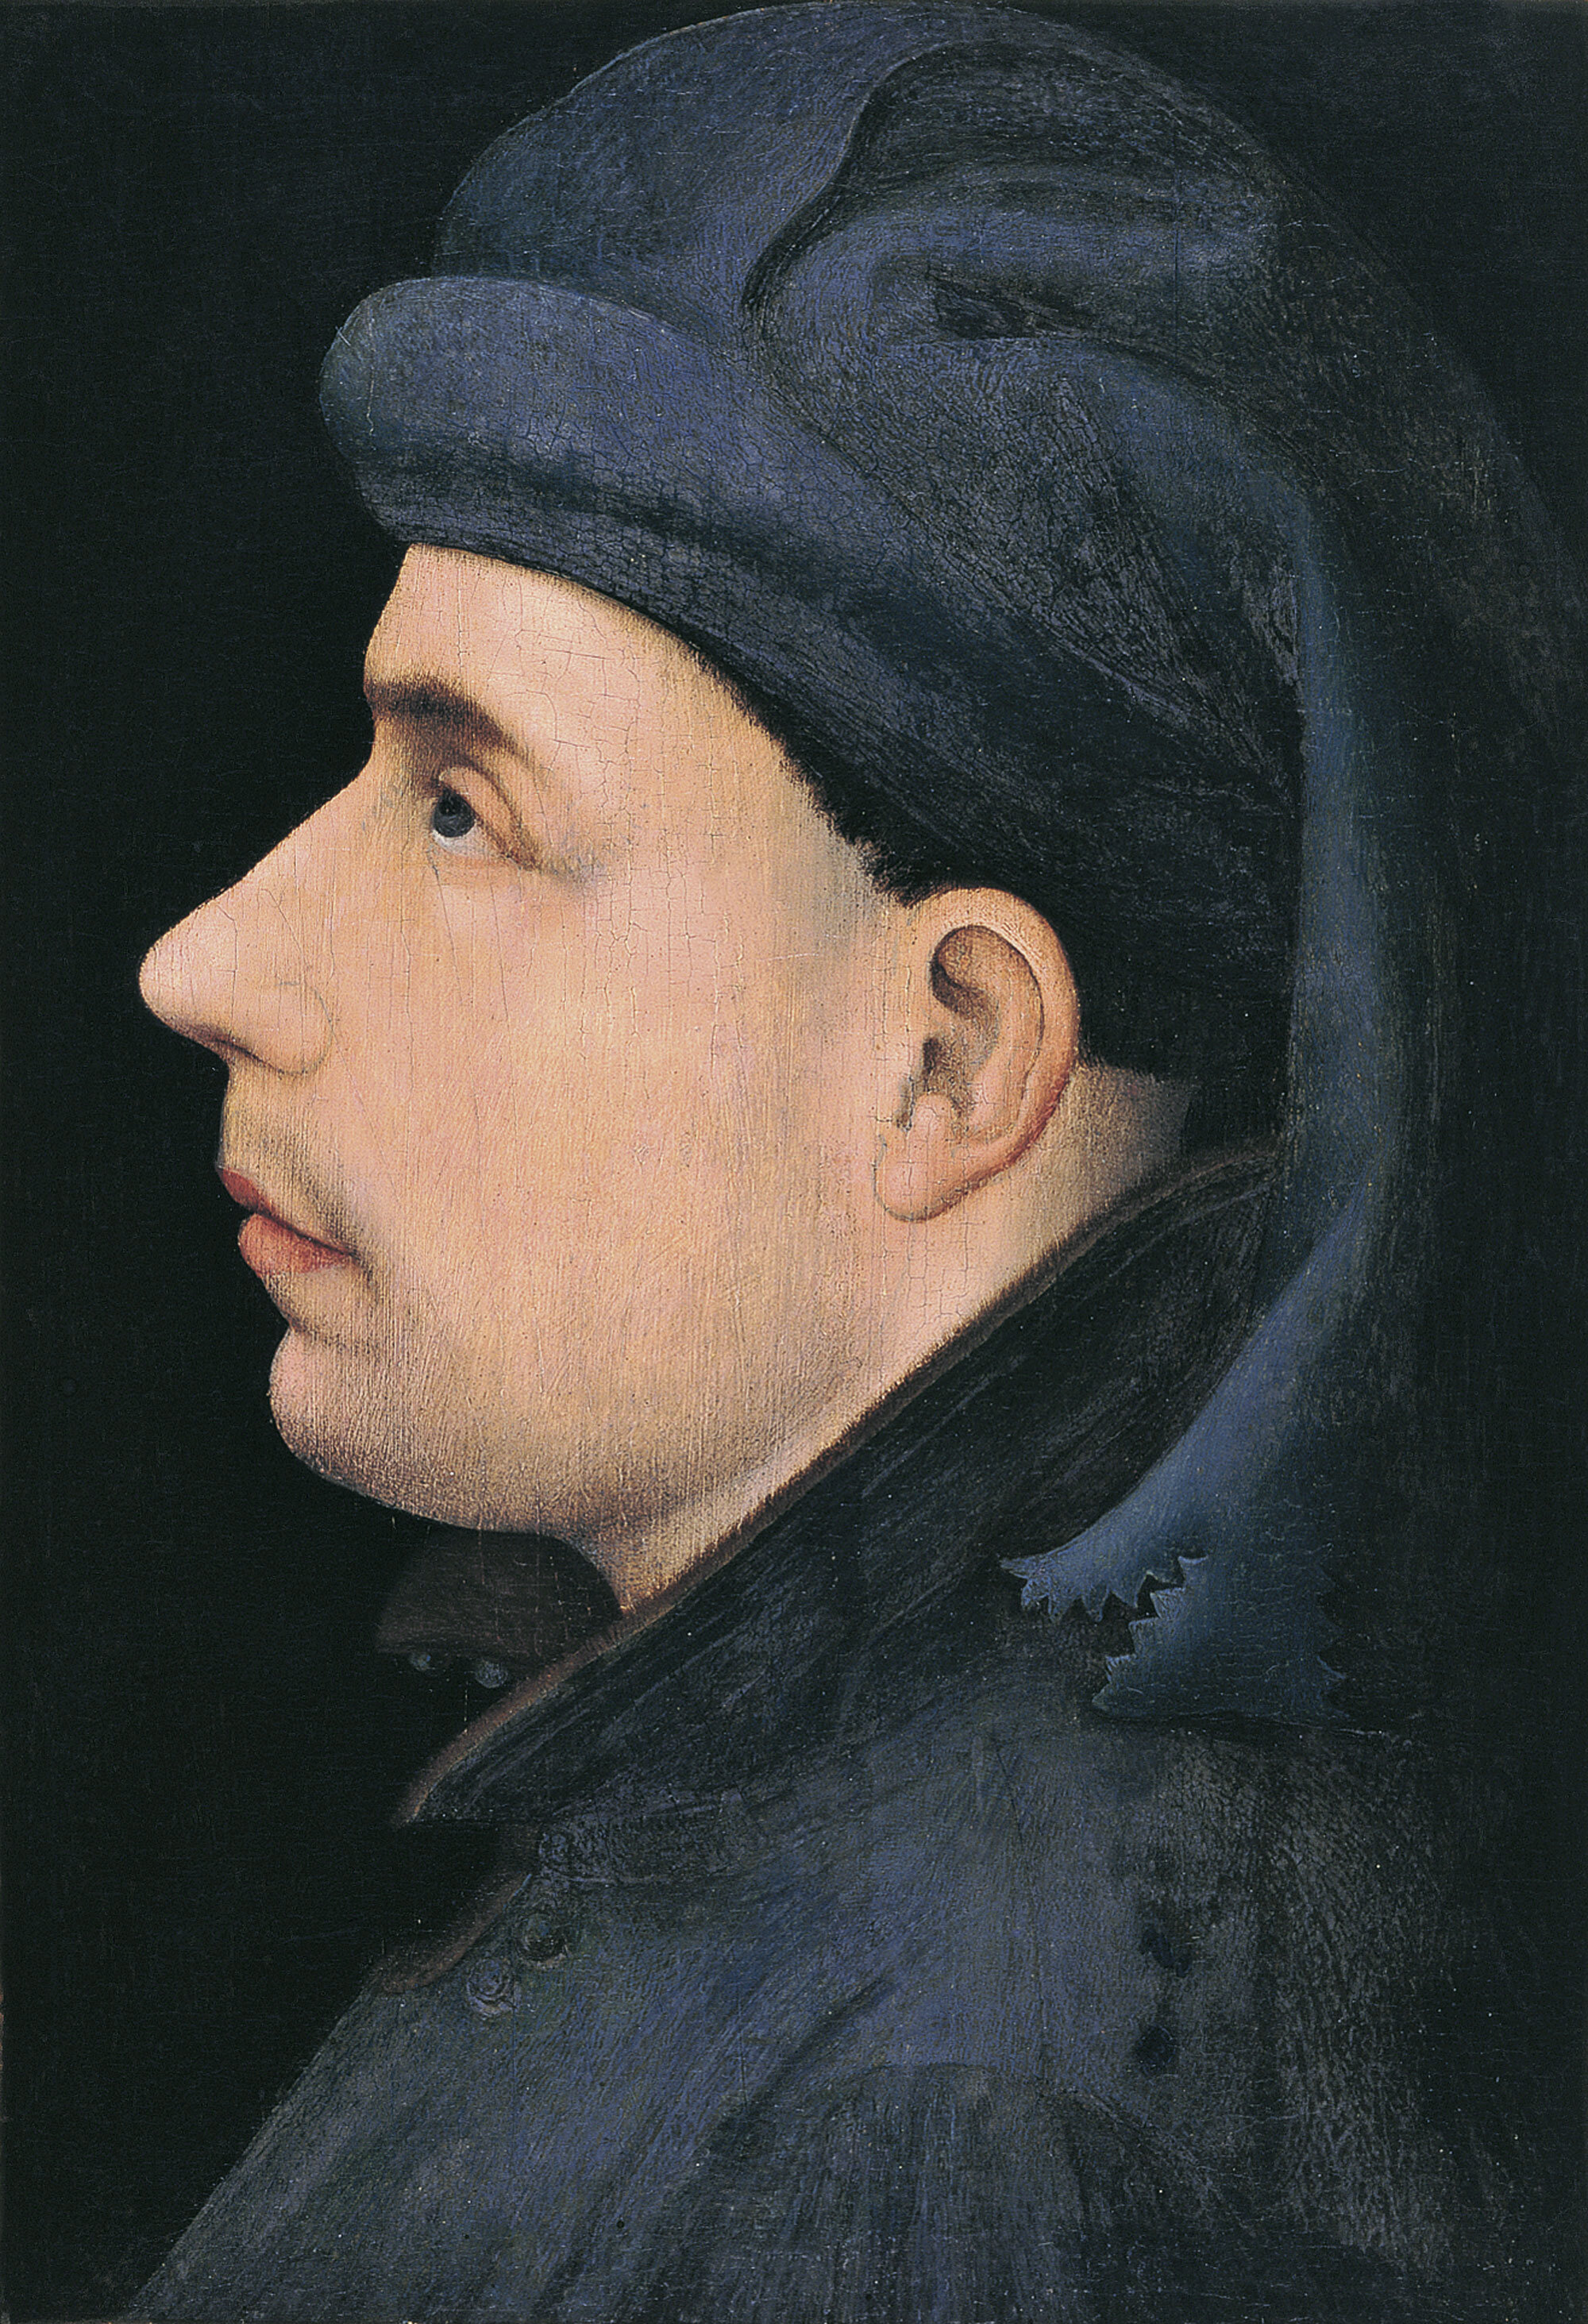 Wenceslaus of Bohemia, Duke of Luxembourg,  by Unidentified painter - http://www.museothyssen.org/thyssen/ficha_obra/454, Public Domain,  https://commons.wikimedia.org/w/index.php?curid=8126528